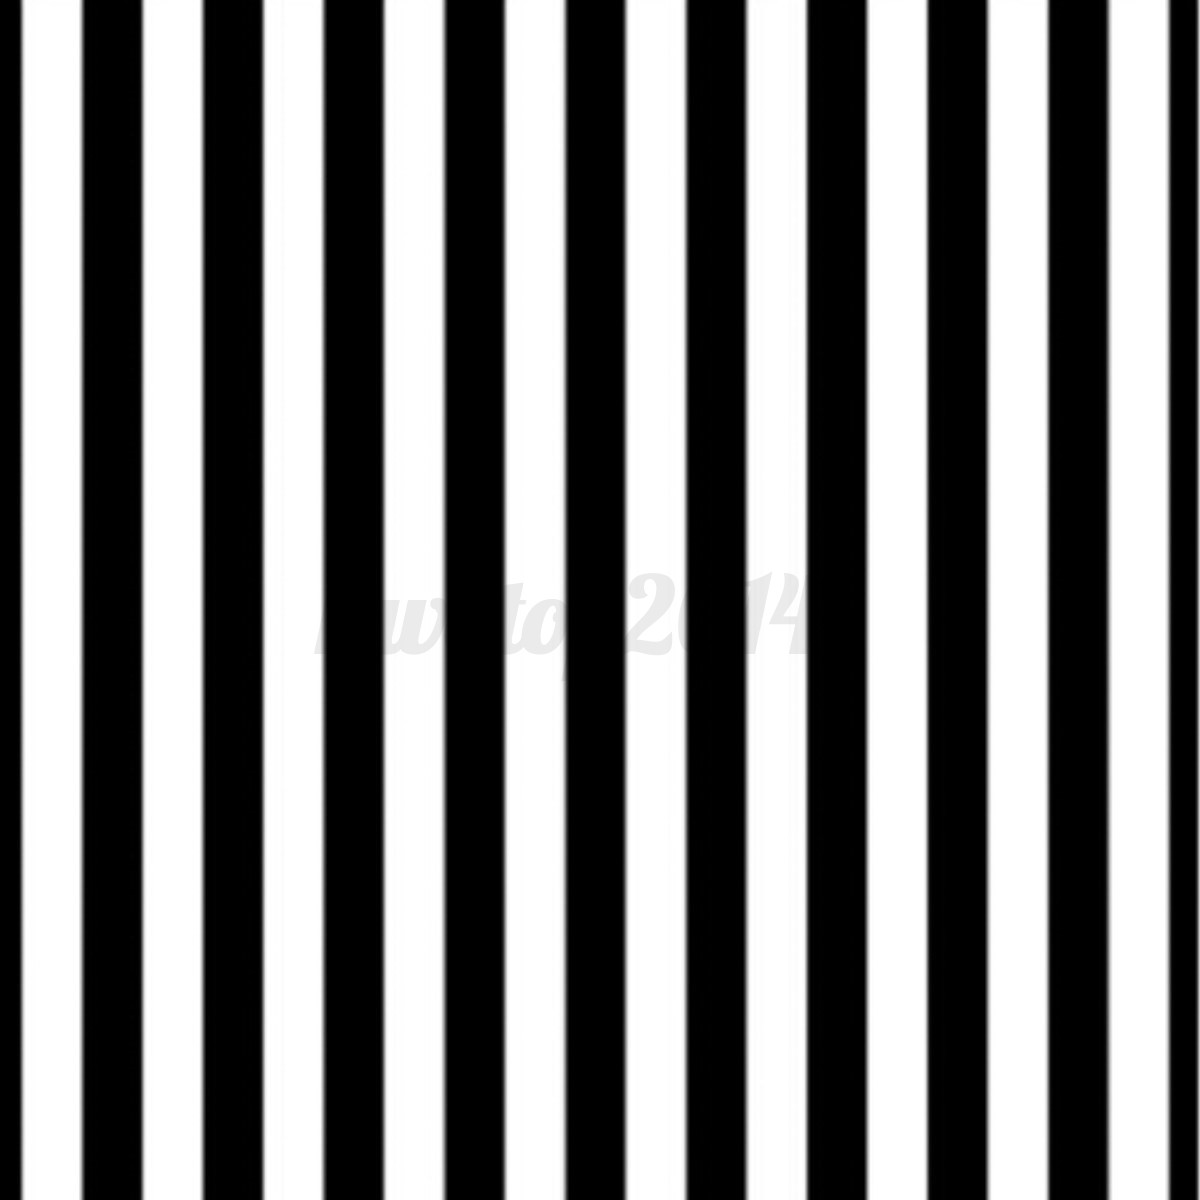 8x8ft Vinyl Black White Stripes Backdrop Photography